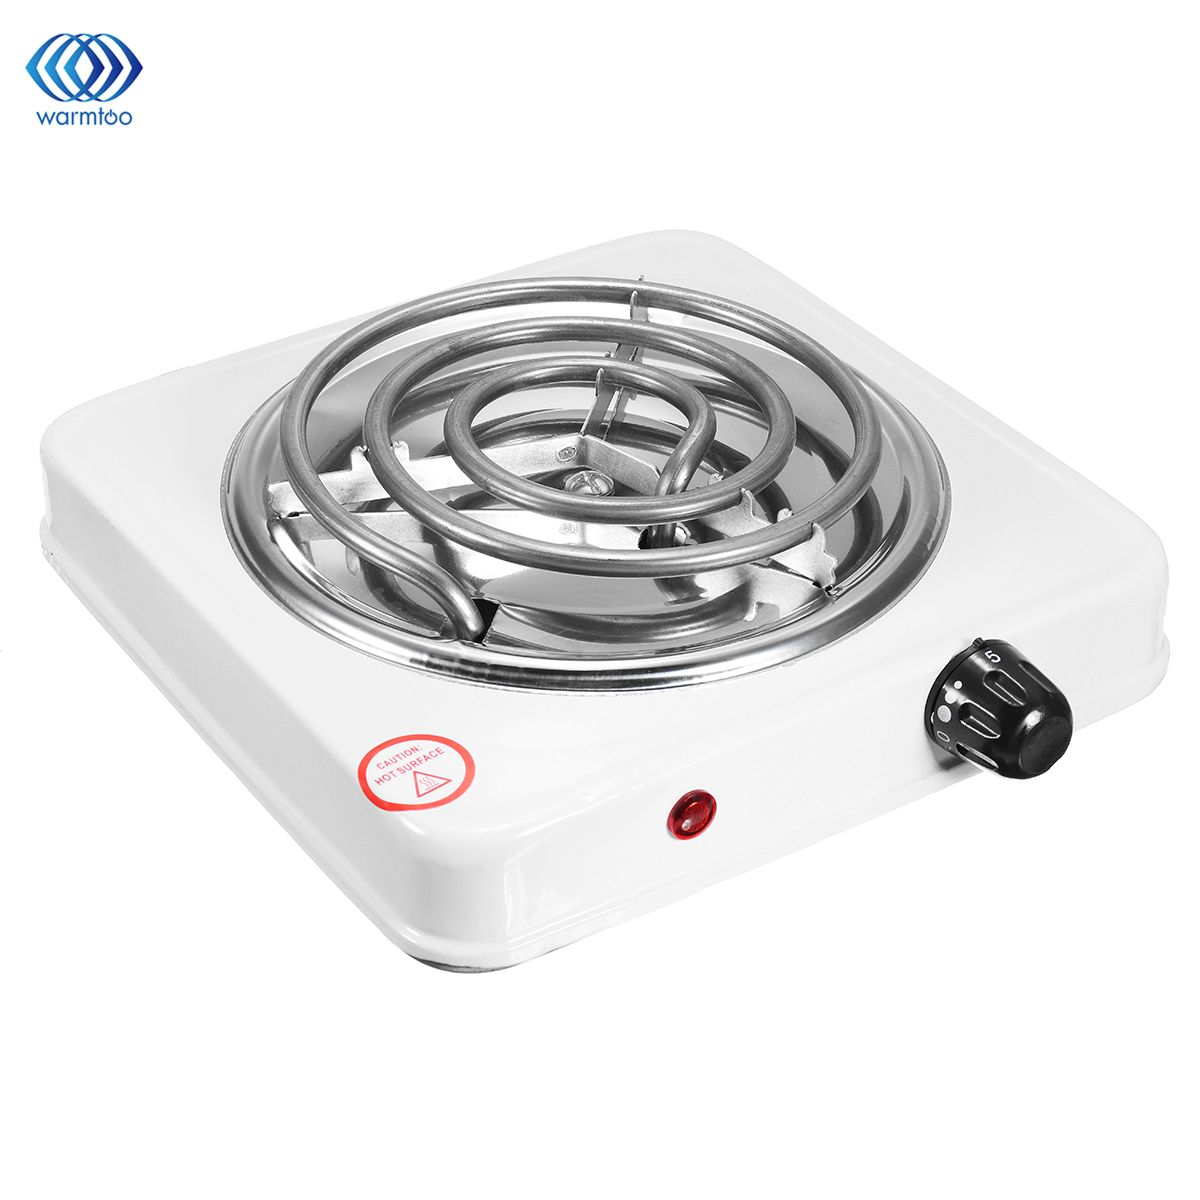 Warmtoo 220V 1000W Burner Electric Stove Hot Plate Kitchen Portable Coffee Heater Design l Hotplate Cooking Appliances White